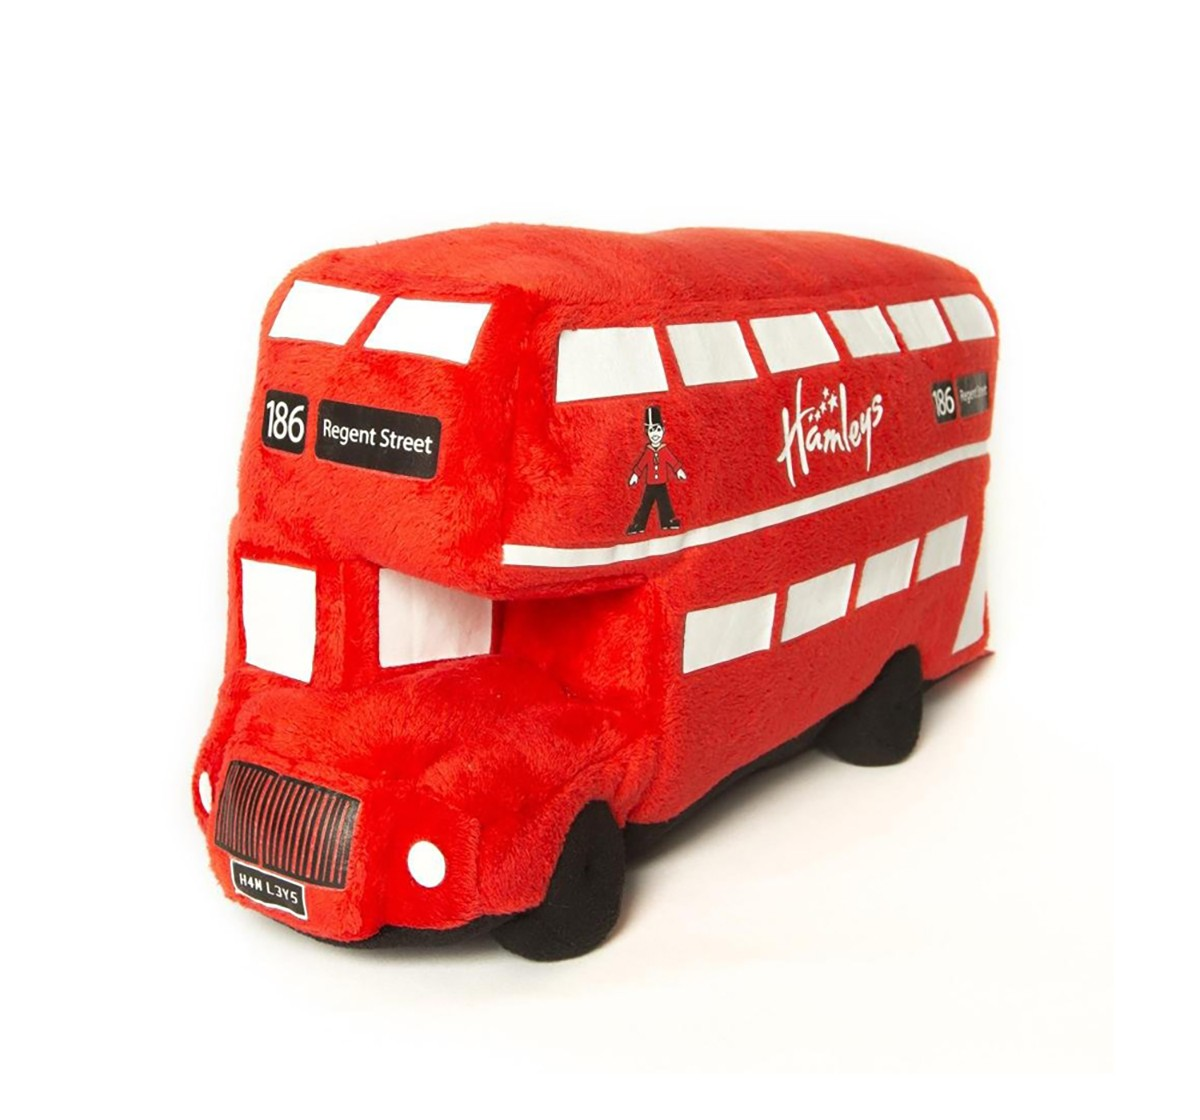 Hamleys London Bus (Red) Quirky Soft Toys for Kids age 3Y+ - 12 Cm